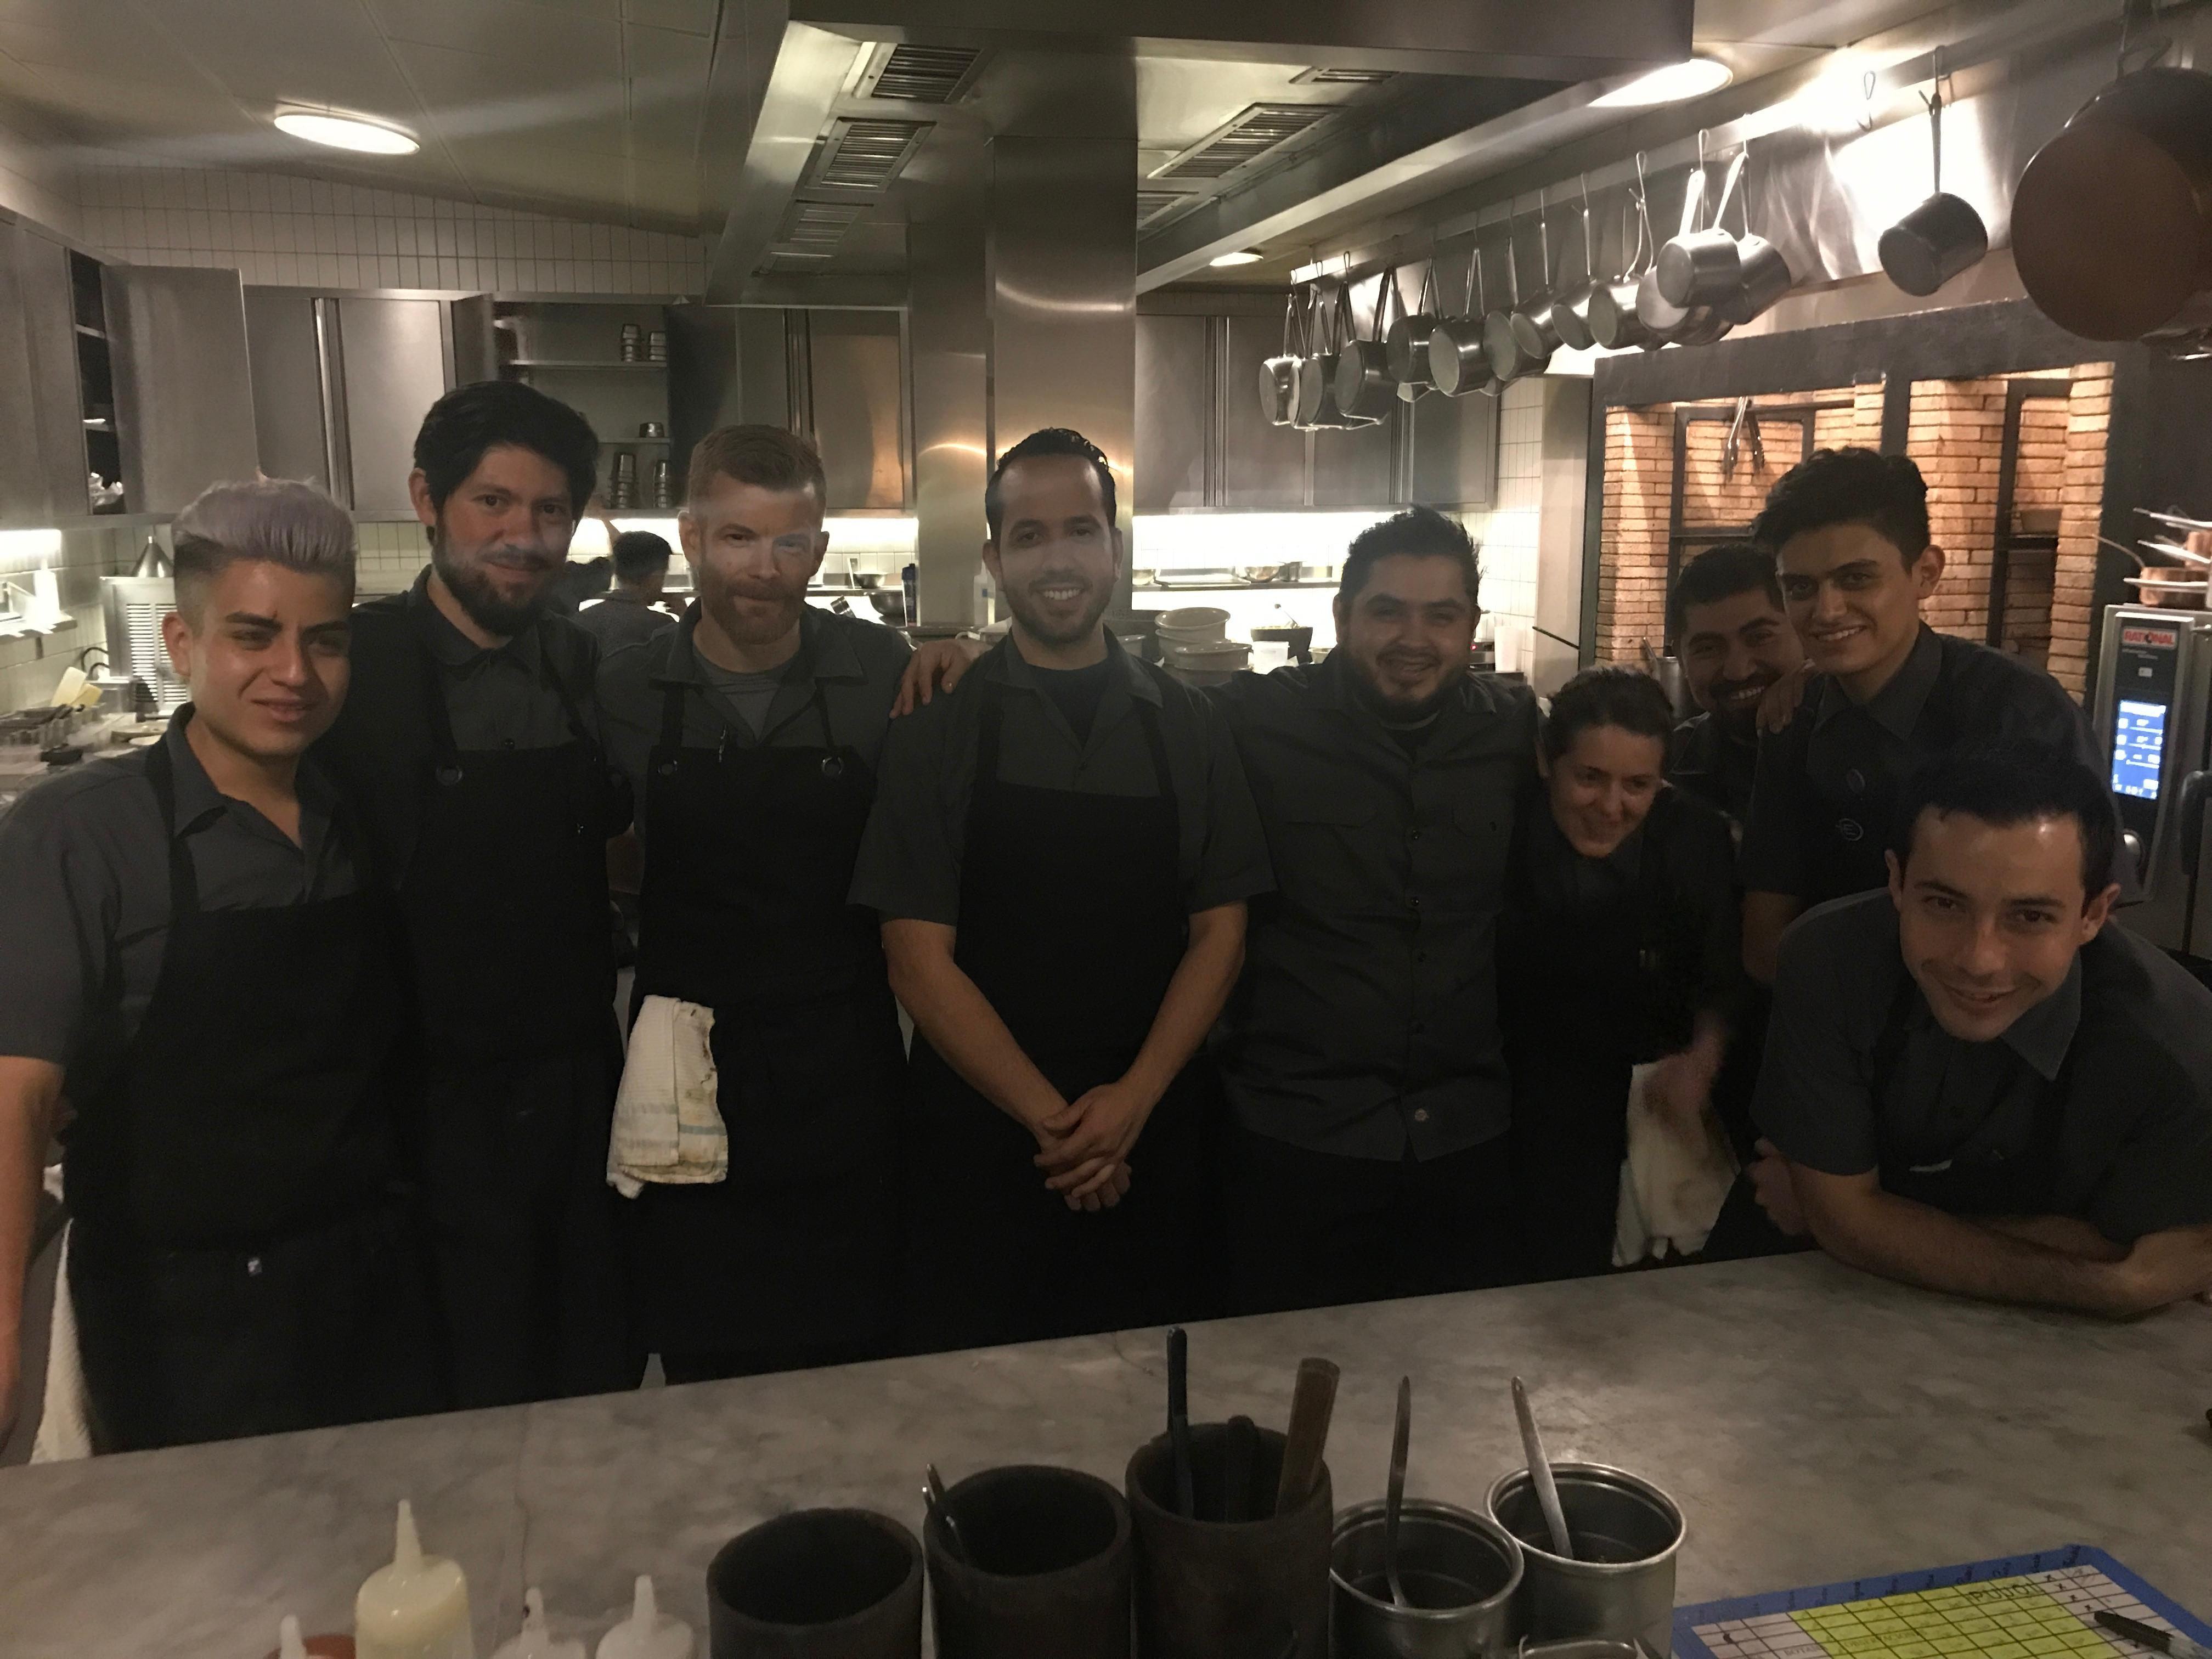 """Everyone at Pujol is very proud to work there -- they are very hard-working, dedicated and passionate cooks and are always pushing forward,"" said Aikens. ""They have great camaraderie, they enjoy what they do and are always running to get tasks completed; you can see that they all love what they do in a 16-hour day."" (Image: Courtesy Robert Aikens)"